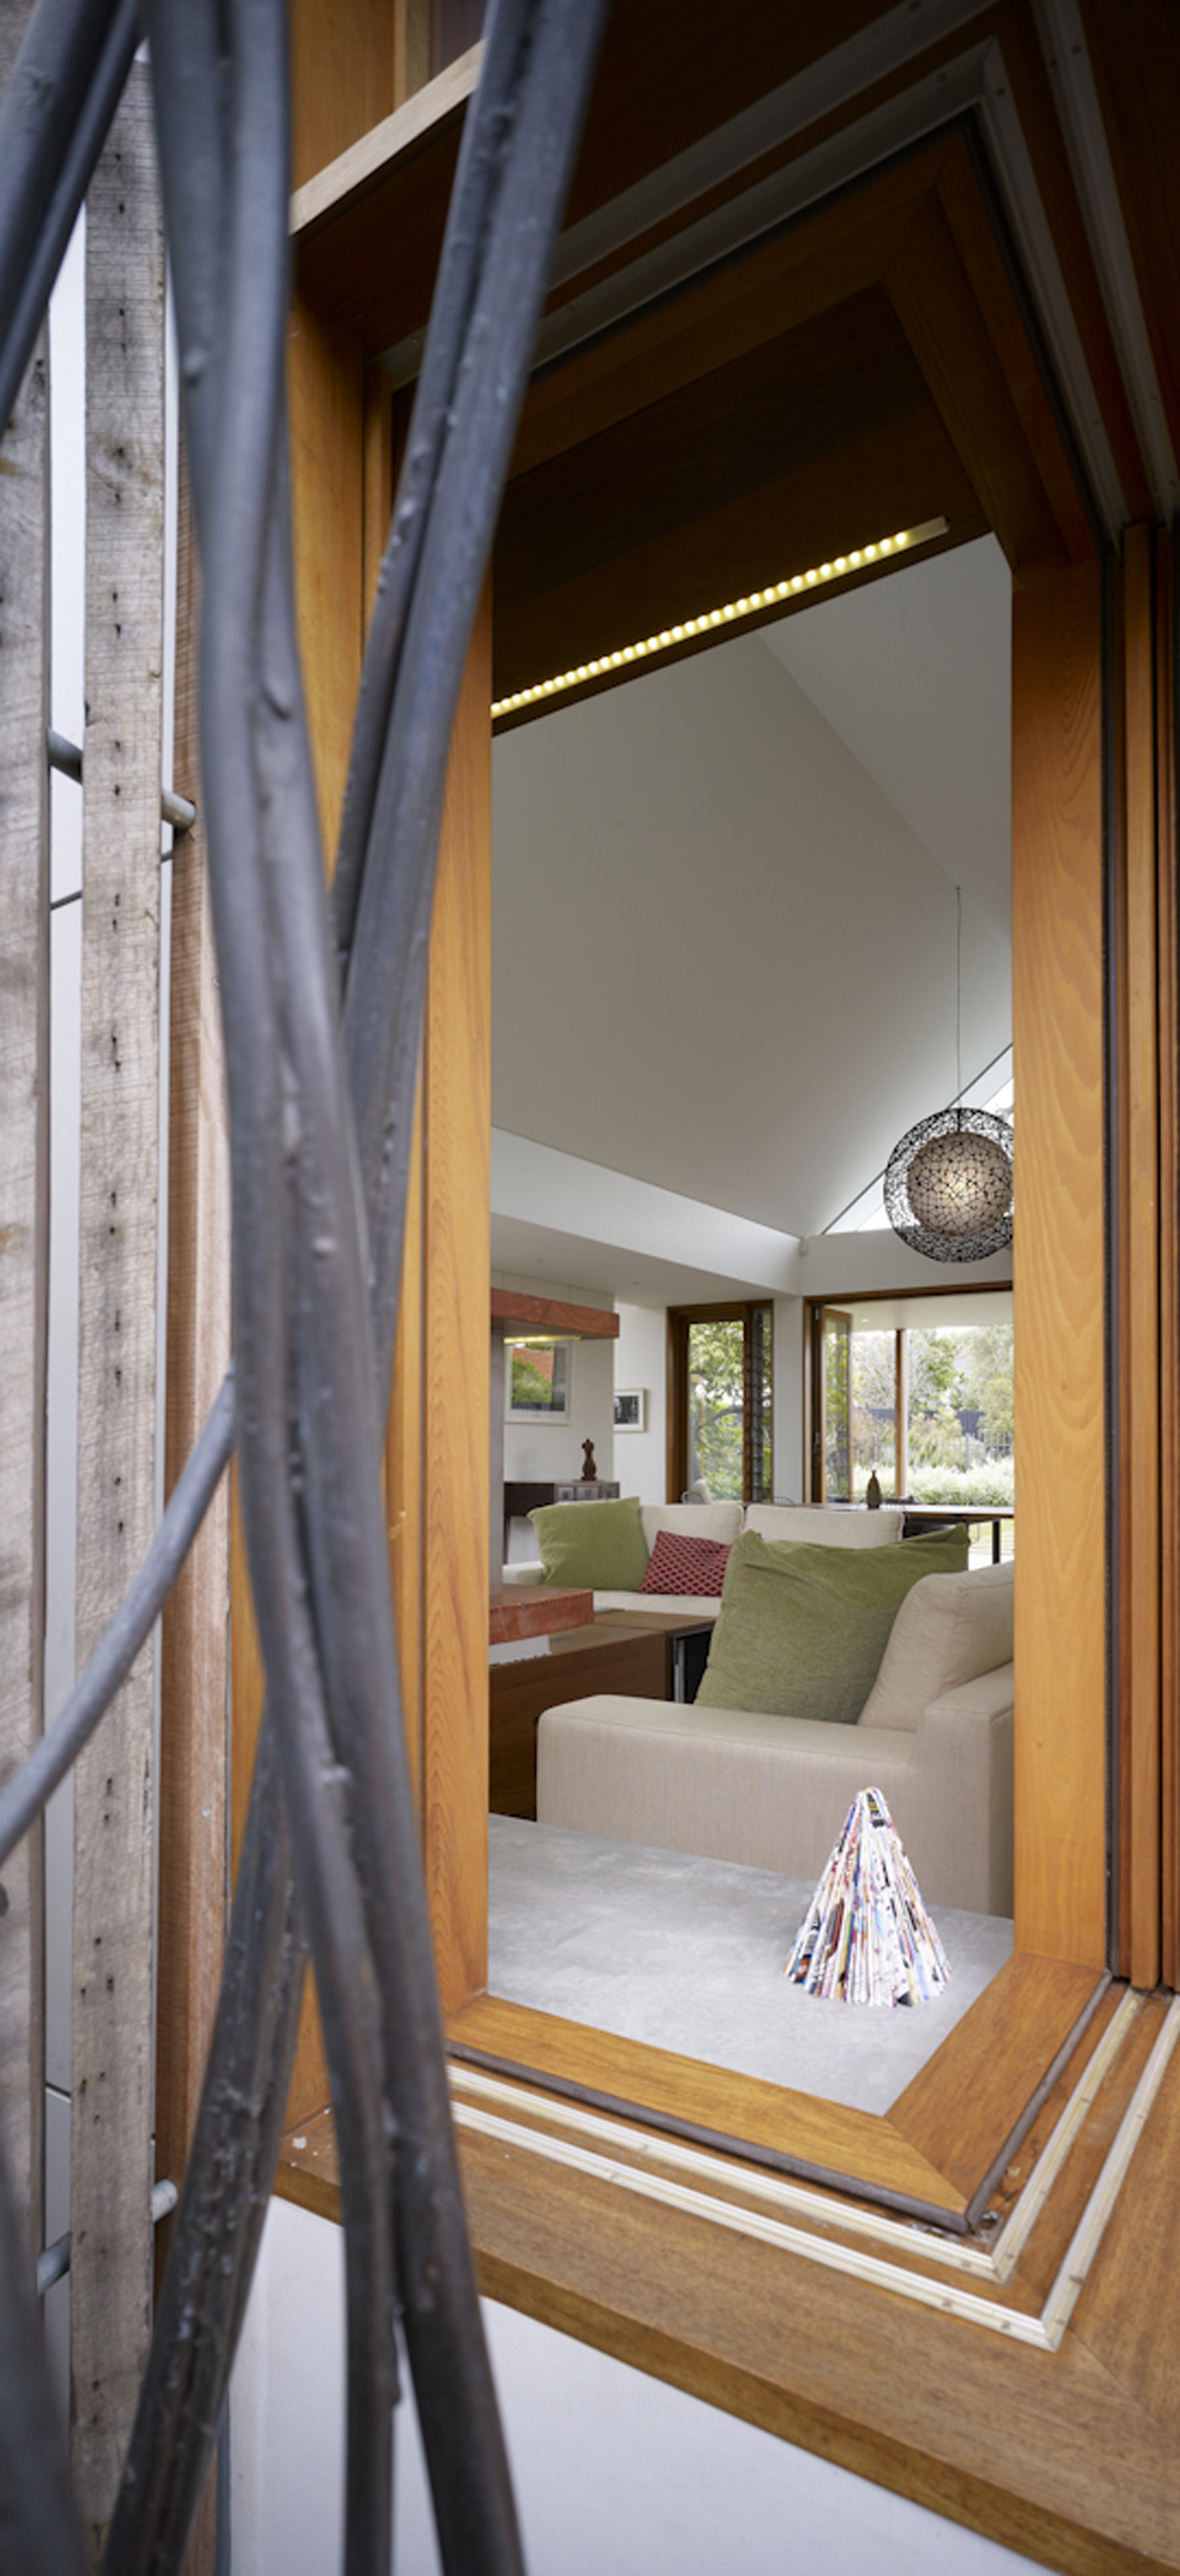 Garrett House by Sydney award winning architecture office Sam Crawford Architects. Timber corner window looking into living room